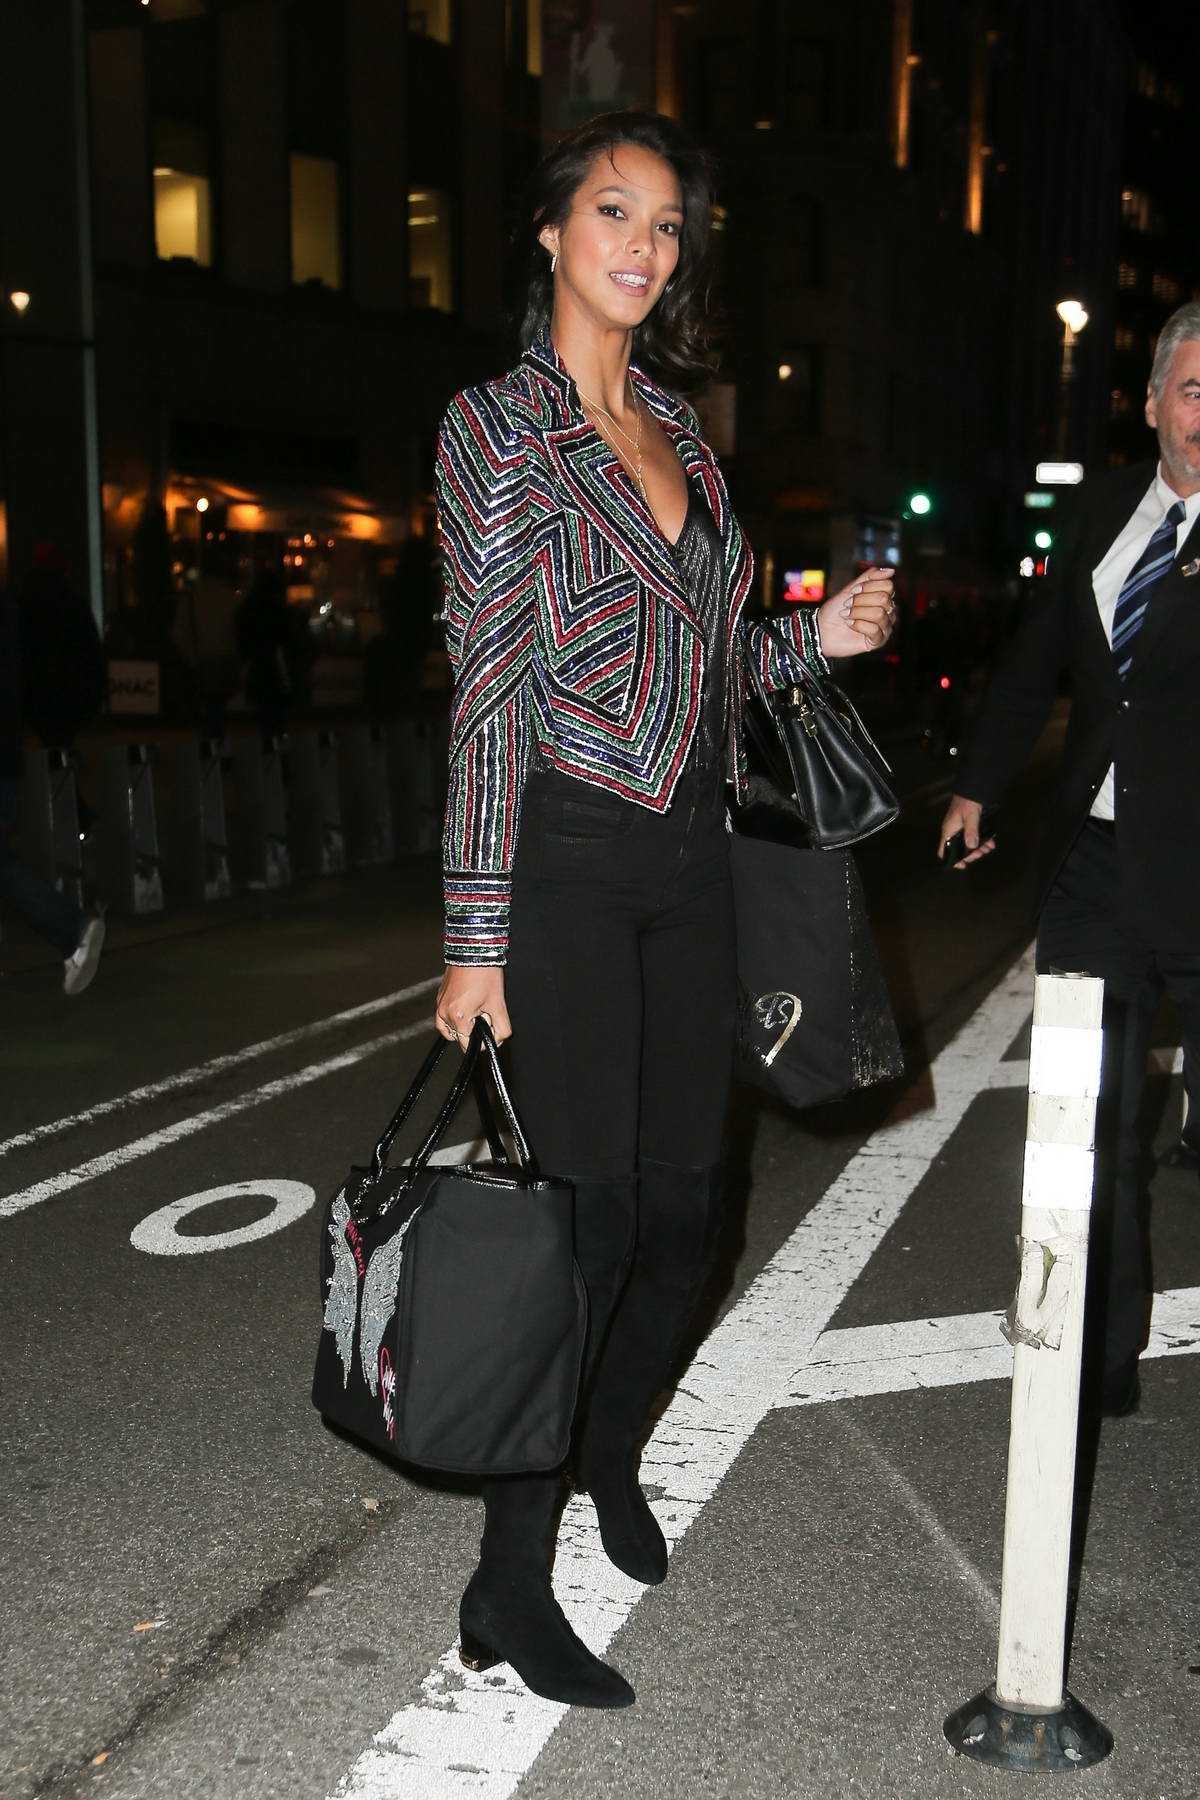 Lais Ribeiro wore a funky jacket with black jeans as she leaves the Victoria's Secret offices in New York City